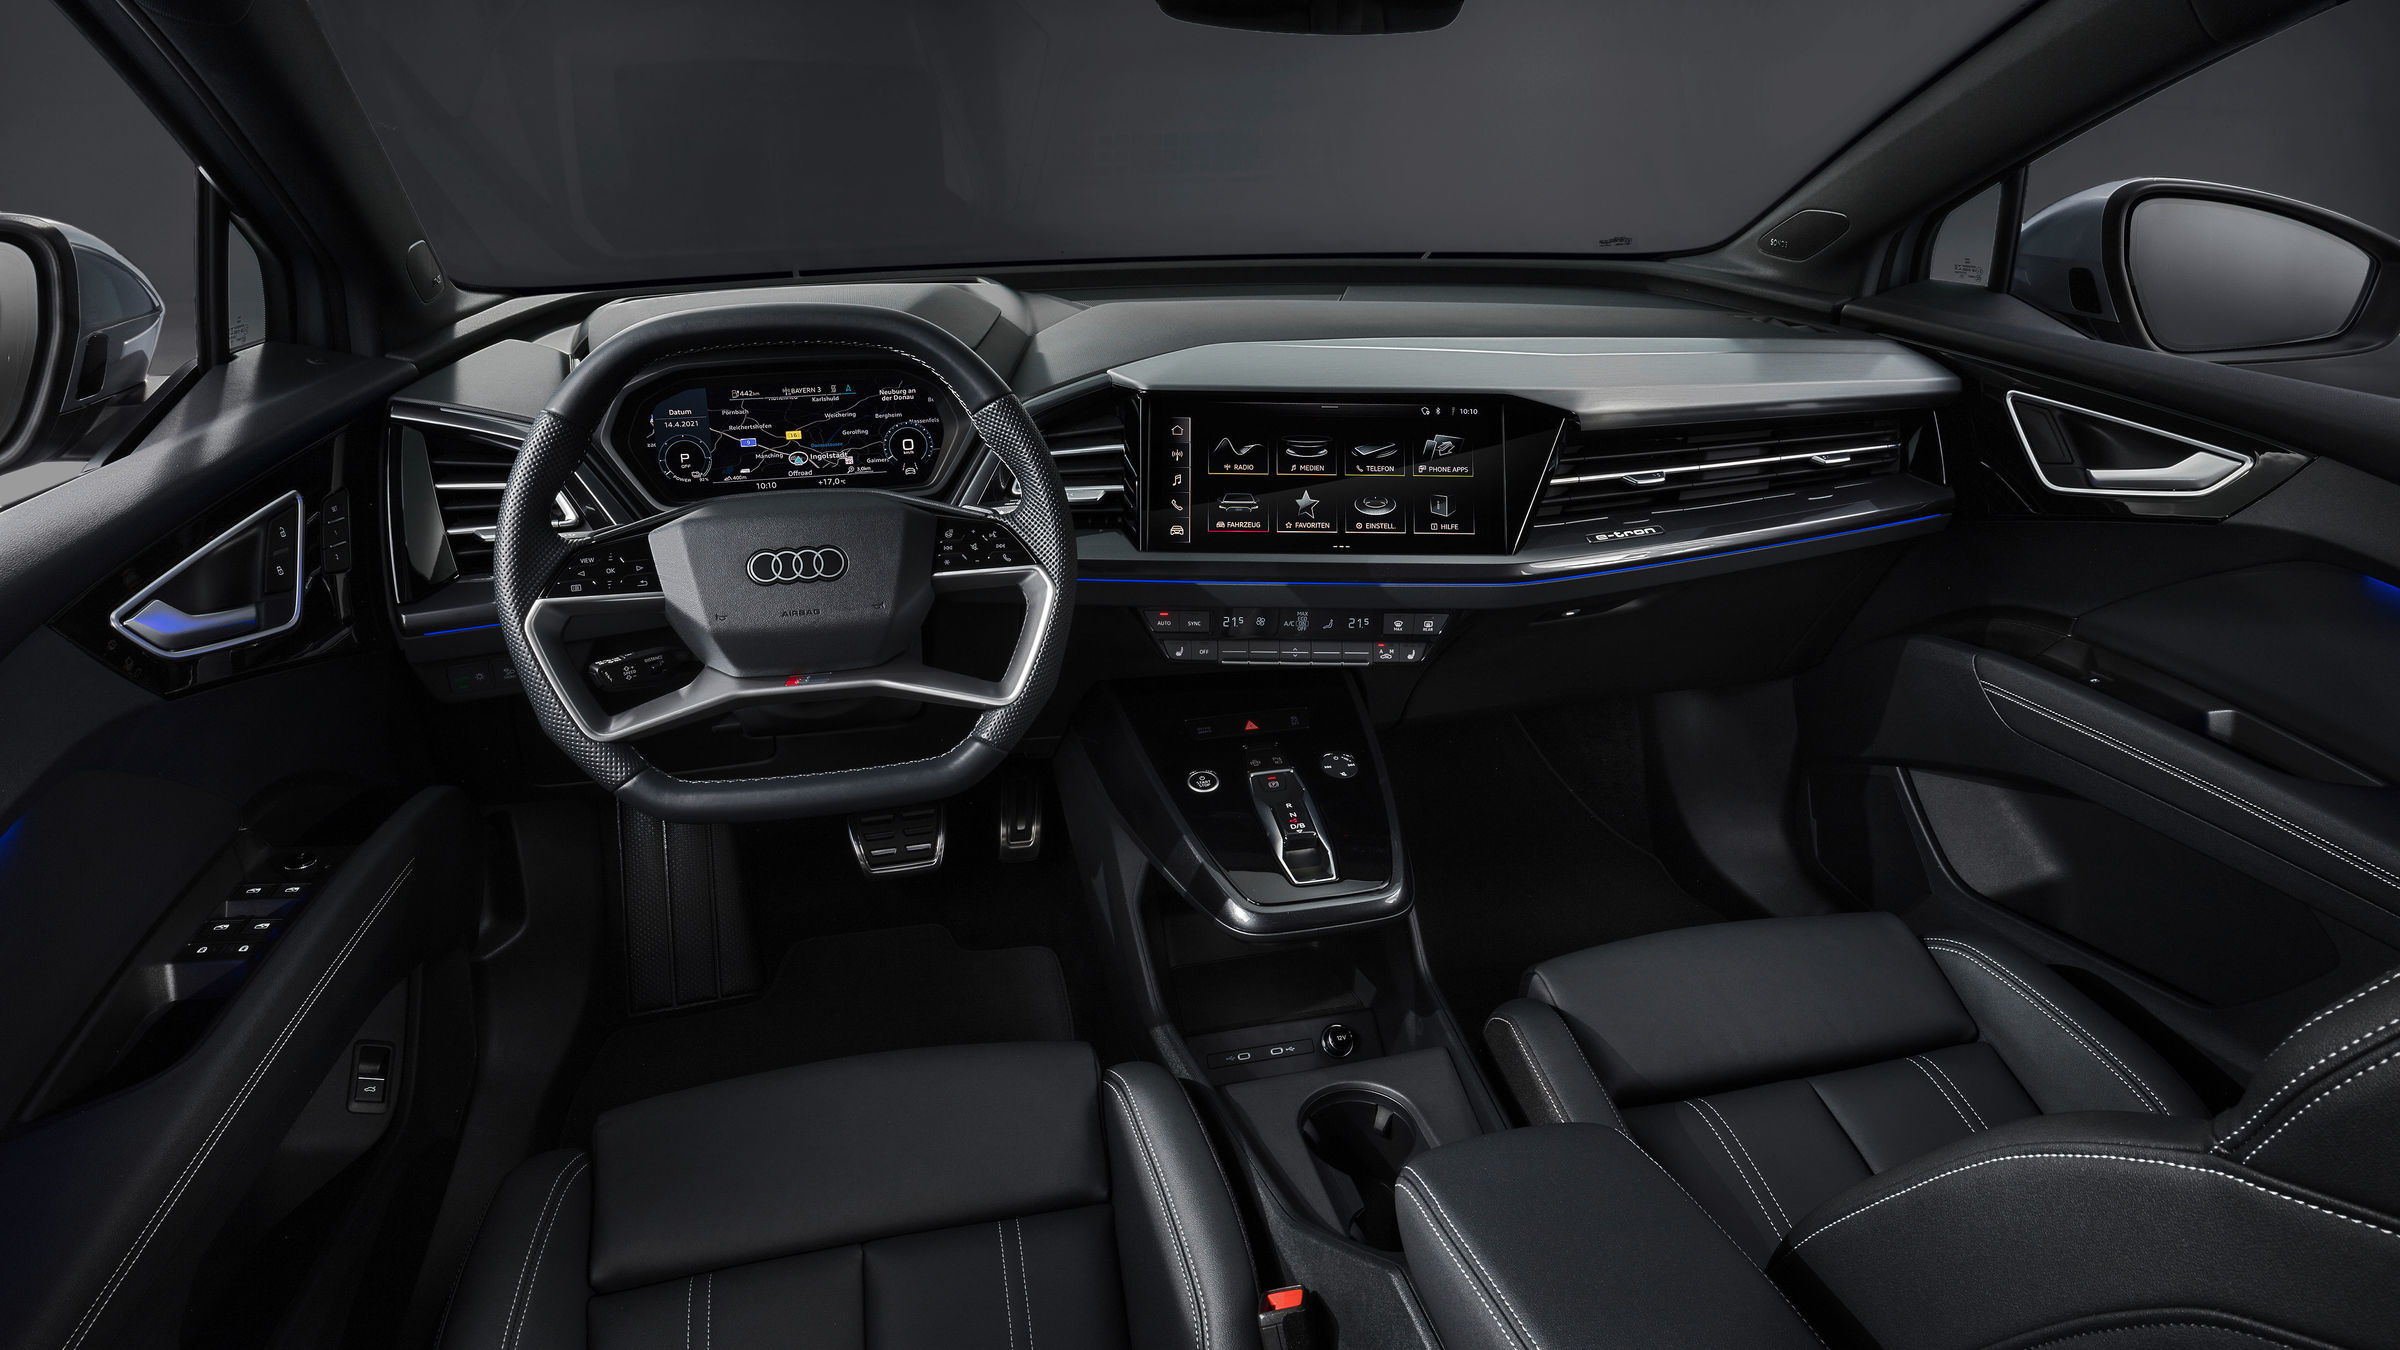 Electric, efficient and emotionally appealing: Audi Q4 e-tron and Q4 Sportback e-tron - Image 5